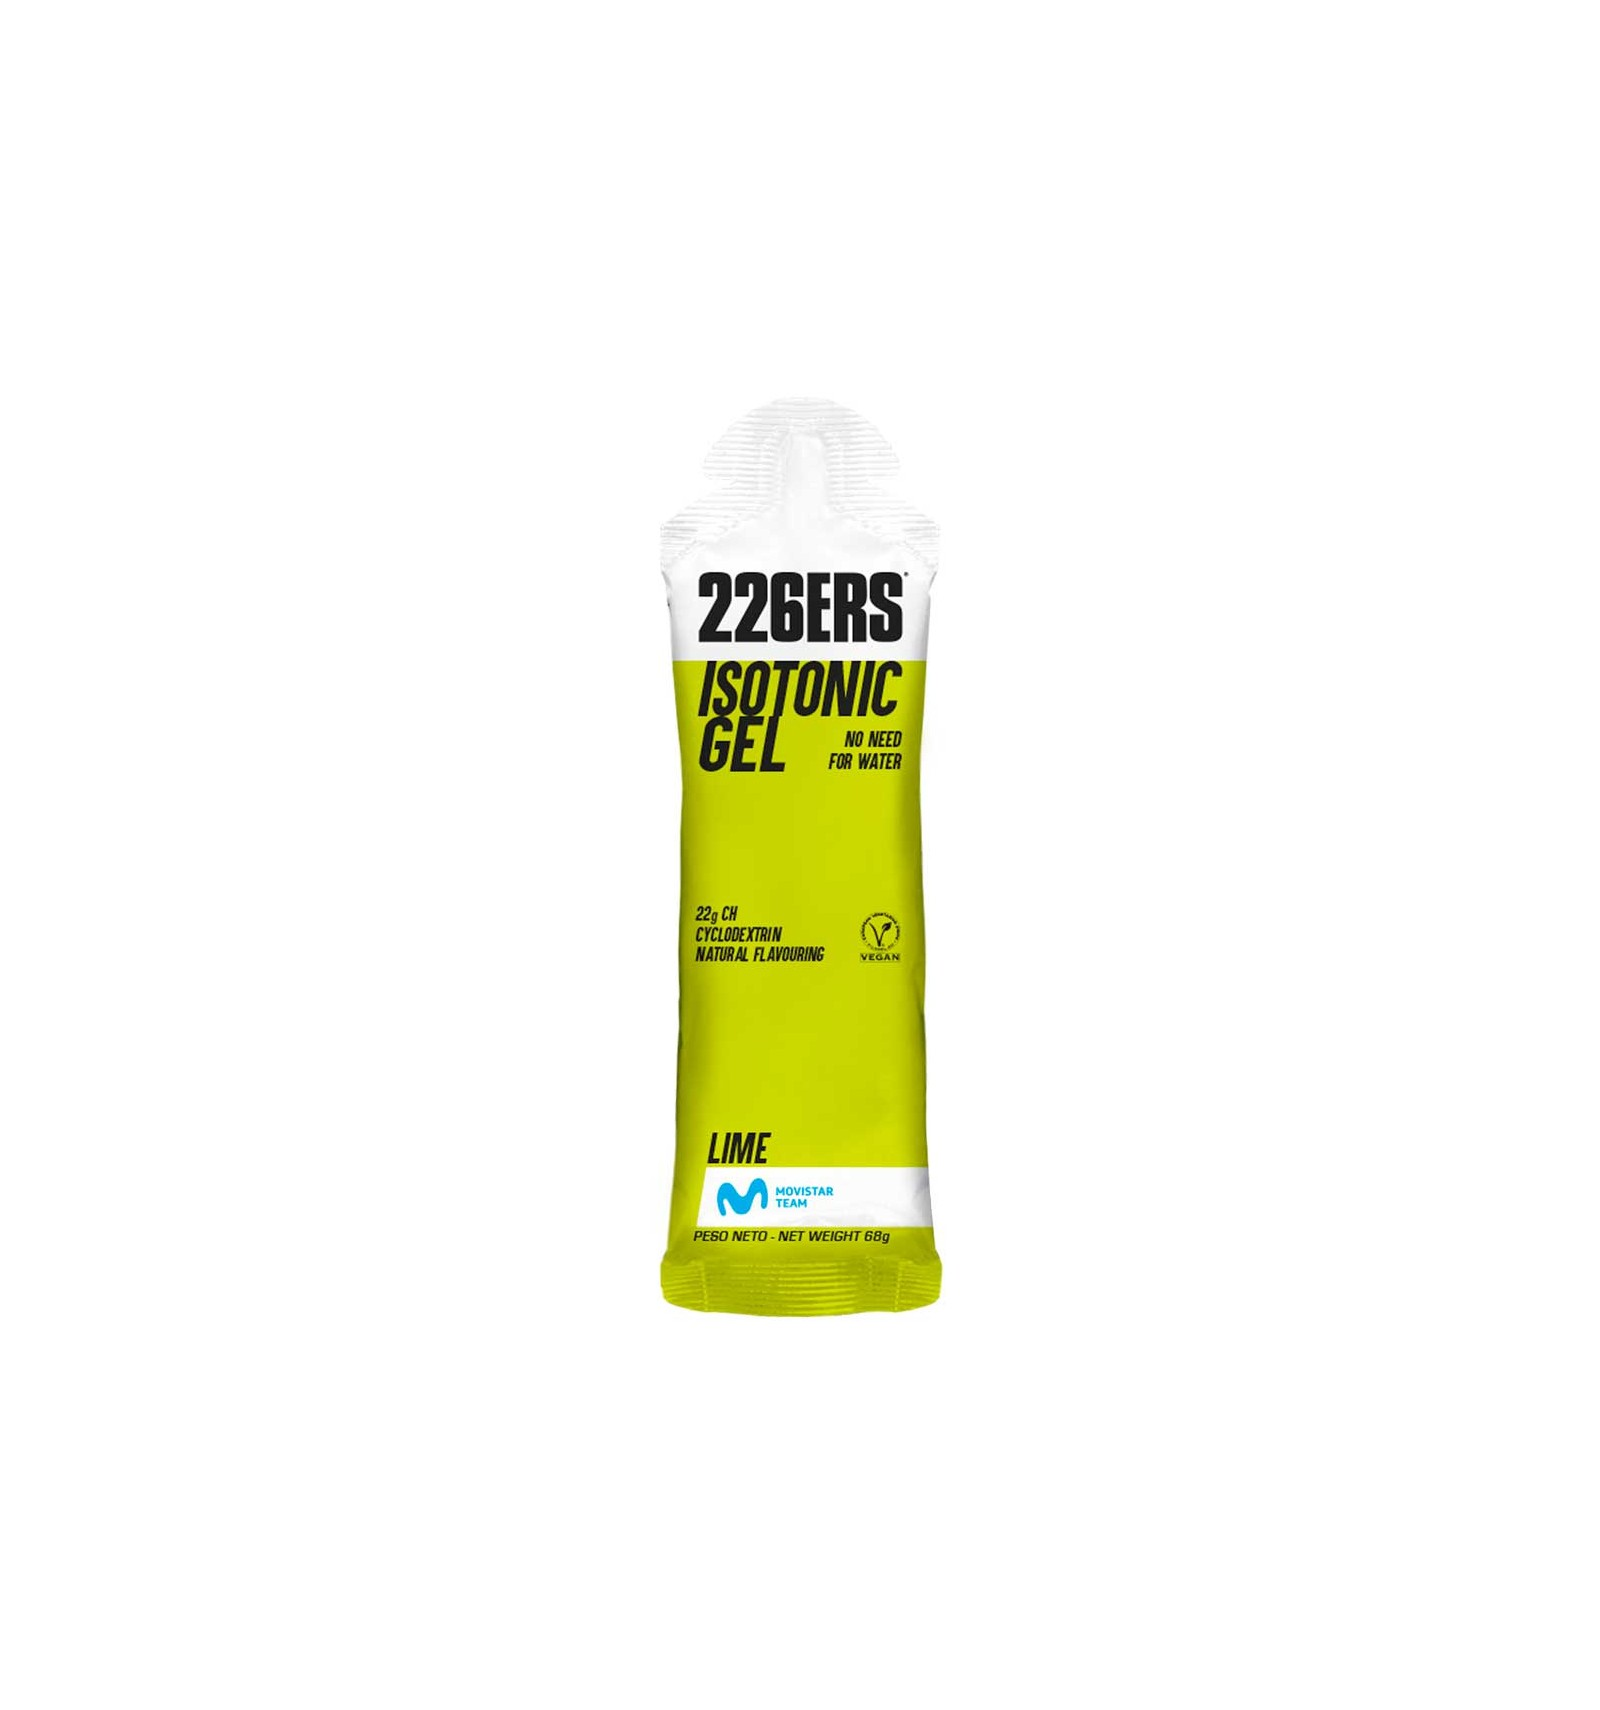 GL-IG-068-LI ISOTONIC GEL LIME - 226ERS